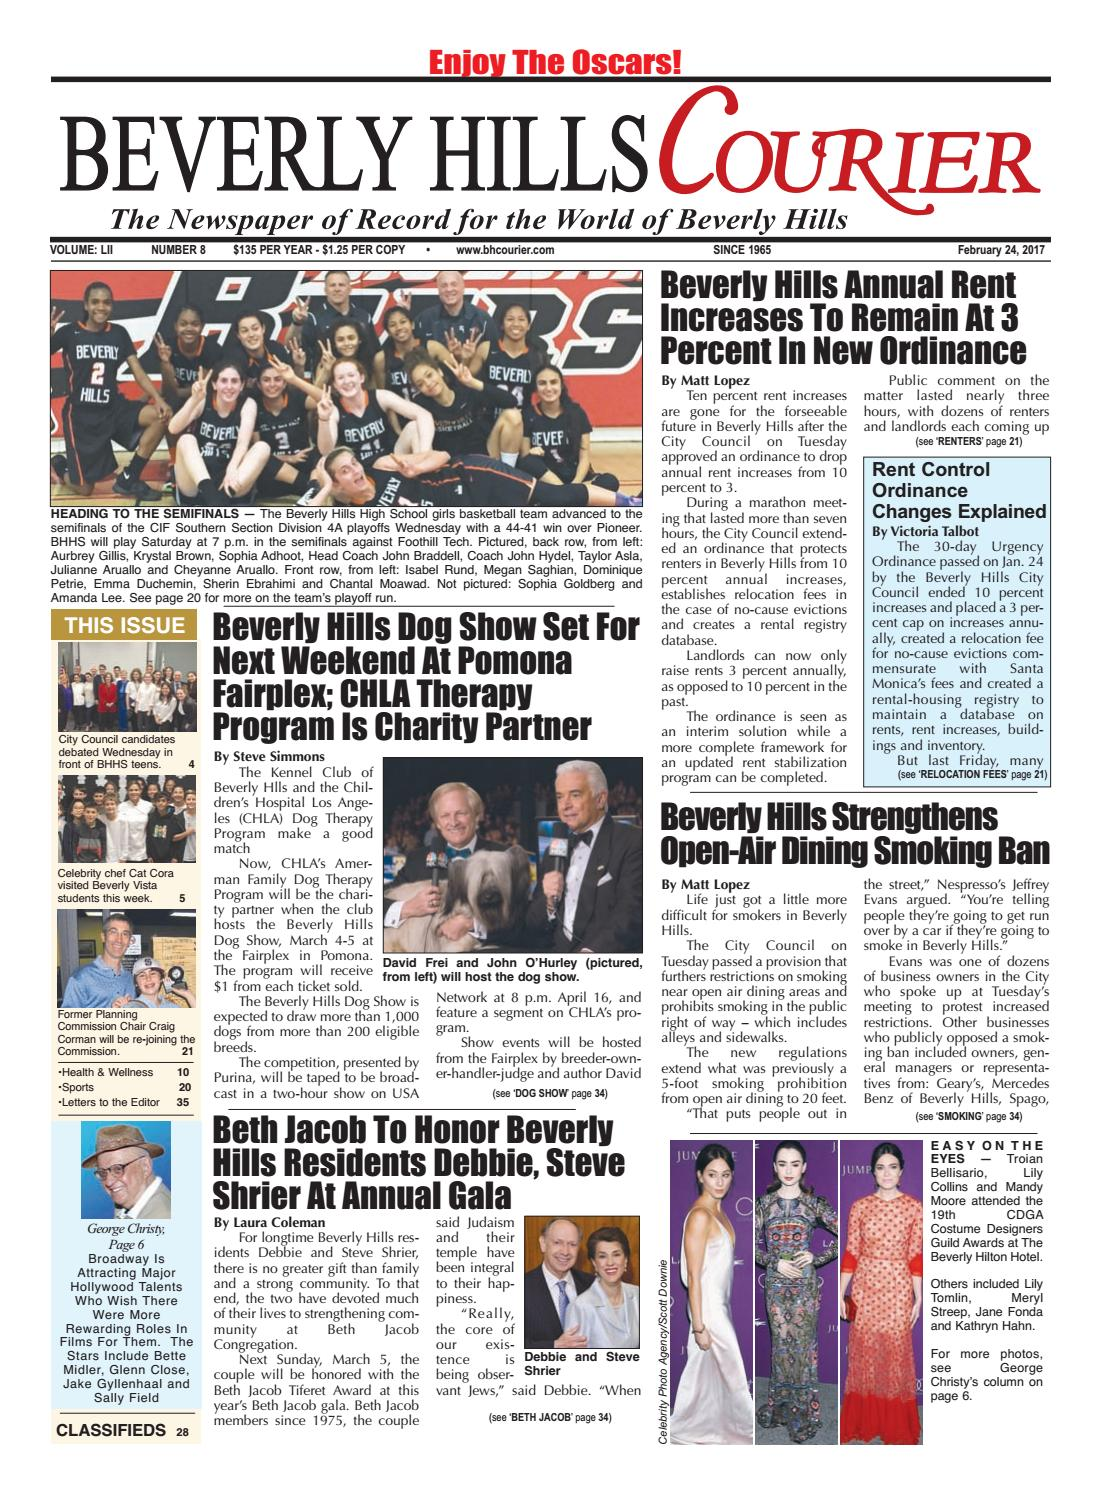 BHCourier E-edition 022417 by The Beverly Hills Courier - issuu